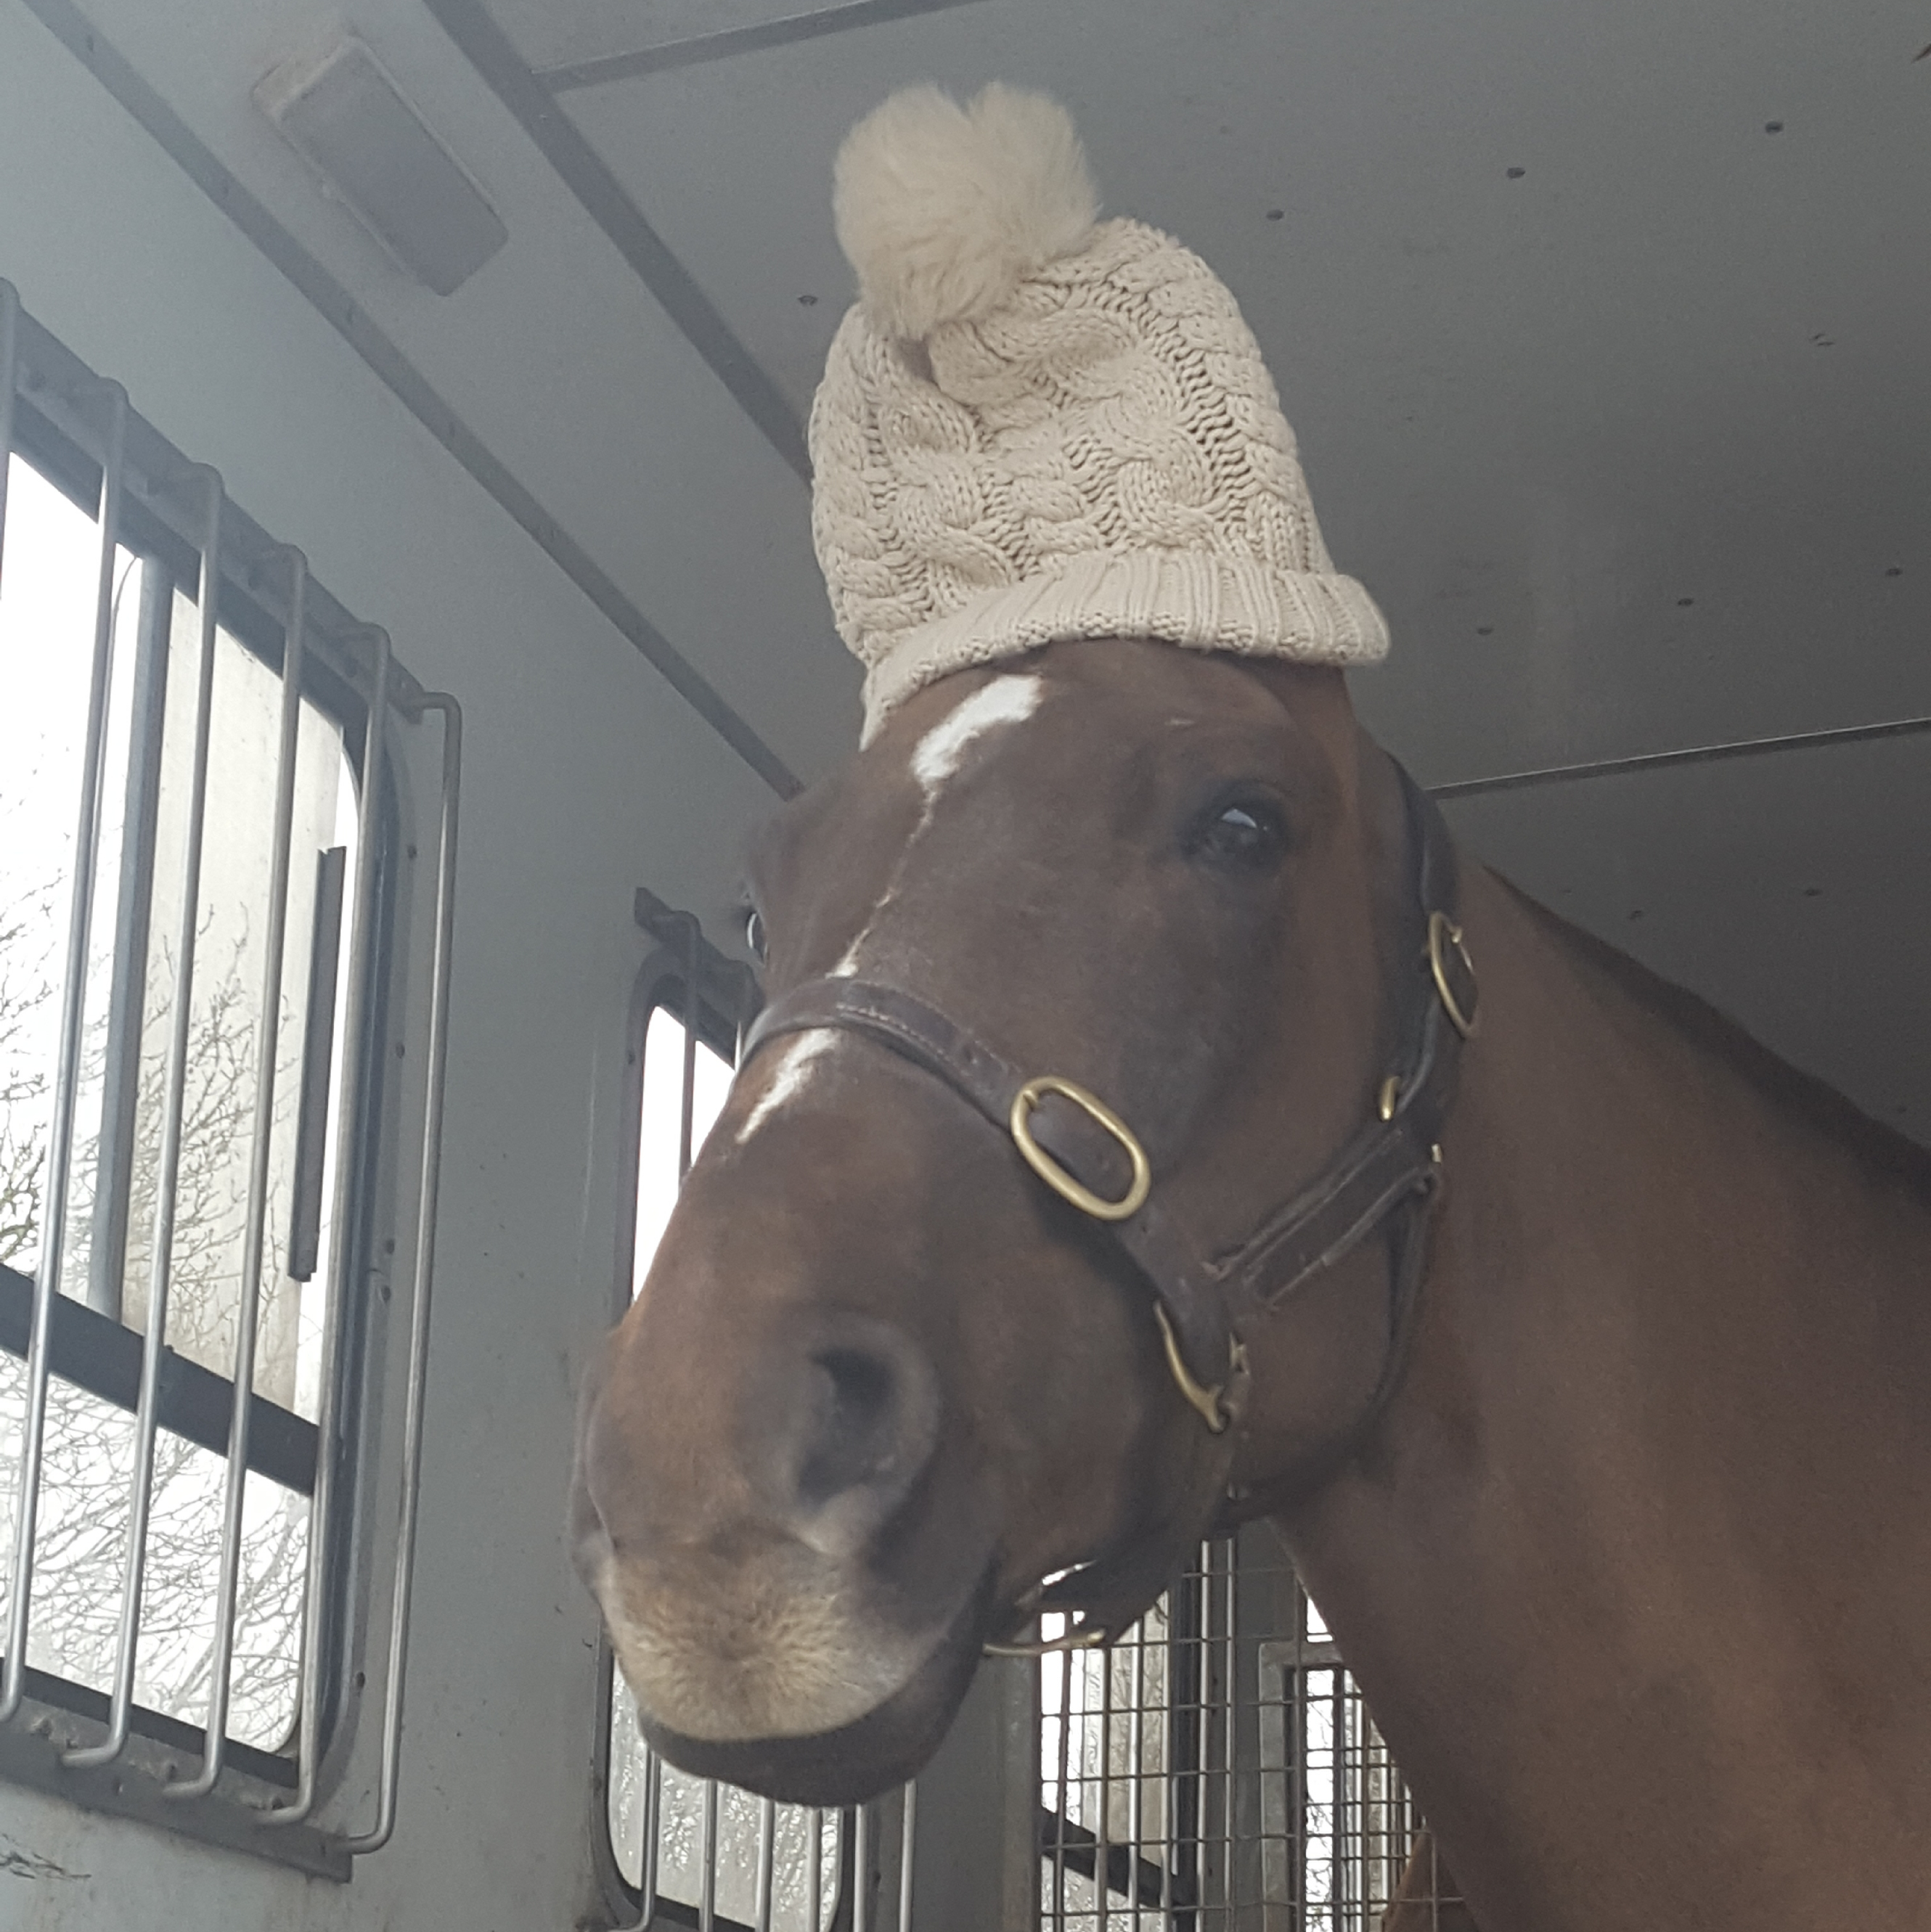 Ludo and his woolly hat!